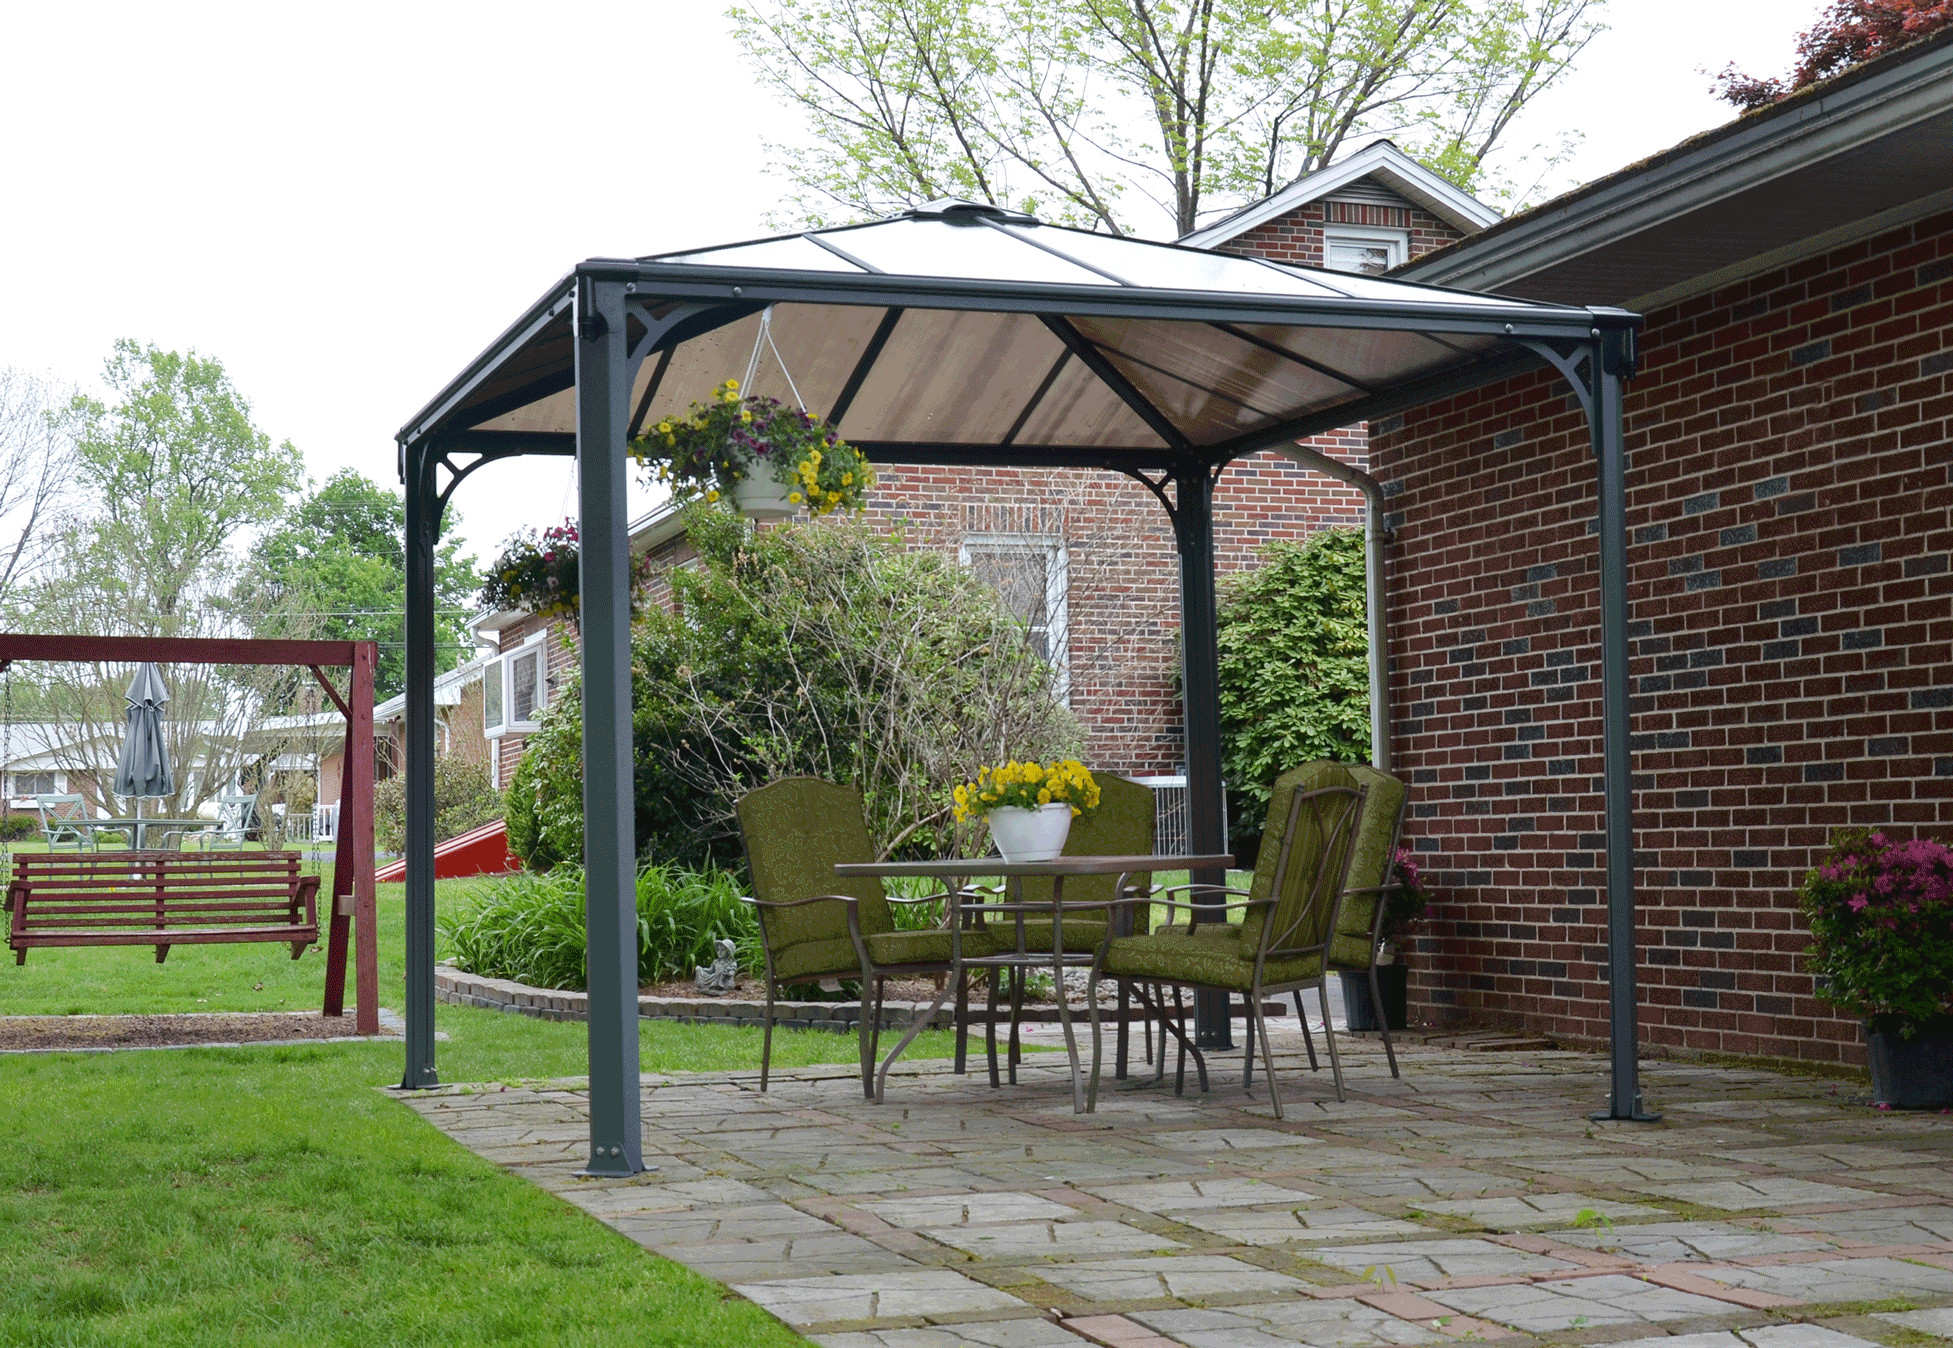 harlington 3000 garden gazebo. harlington_garden_gazebo_3000_03-web OSBRORQ